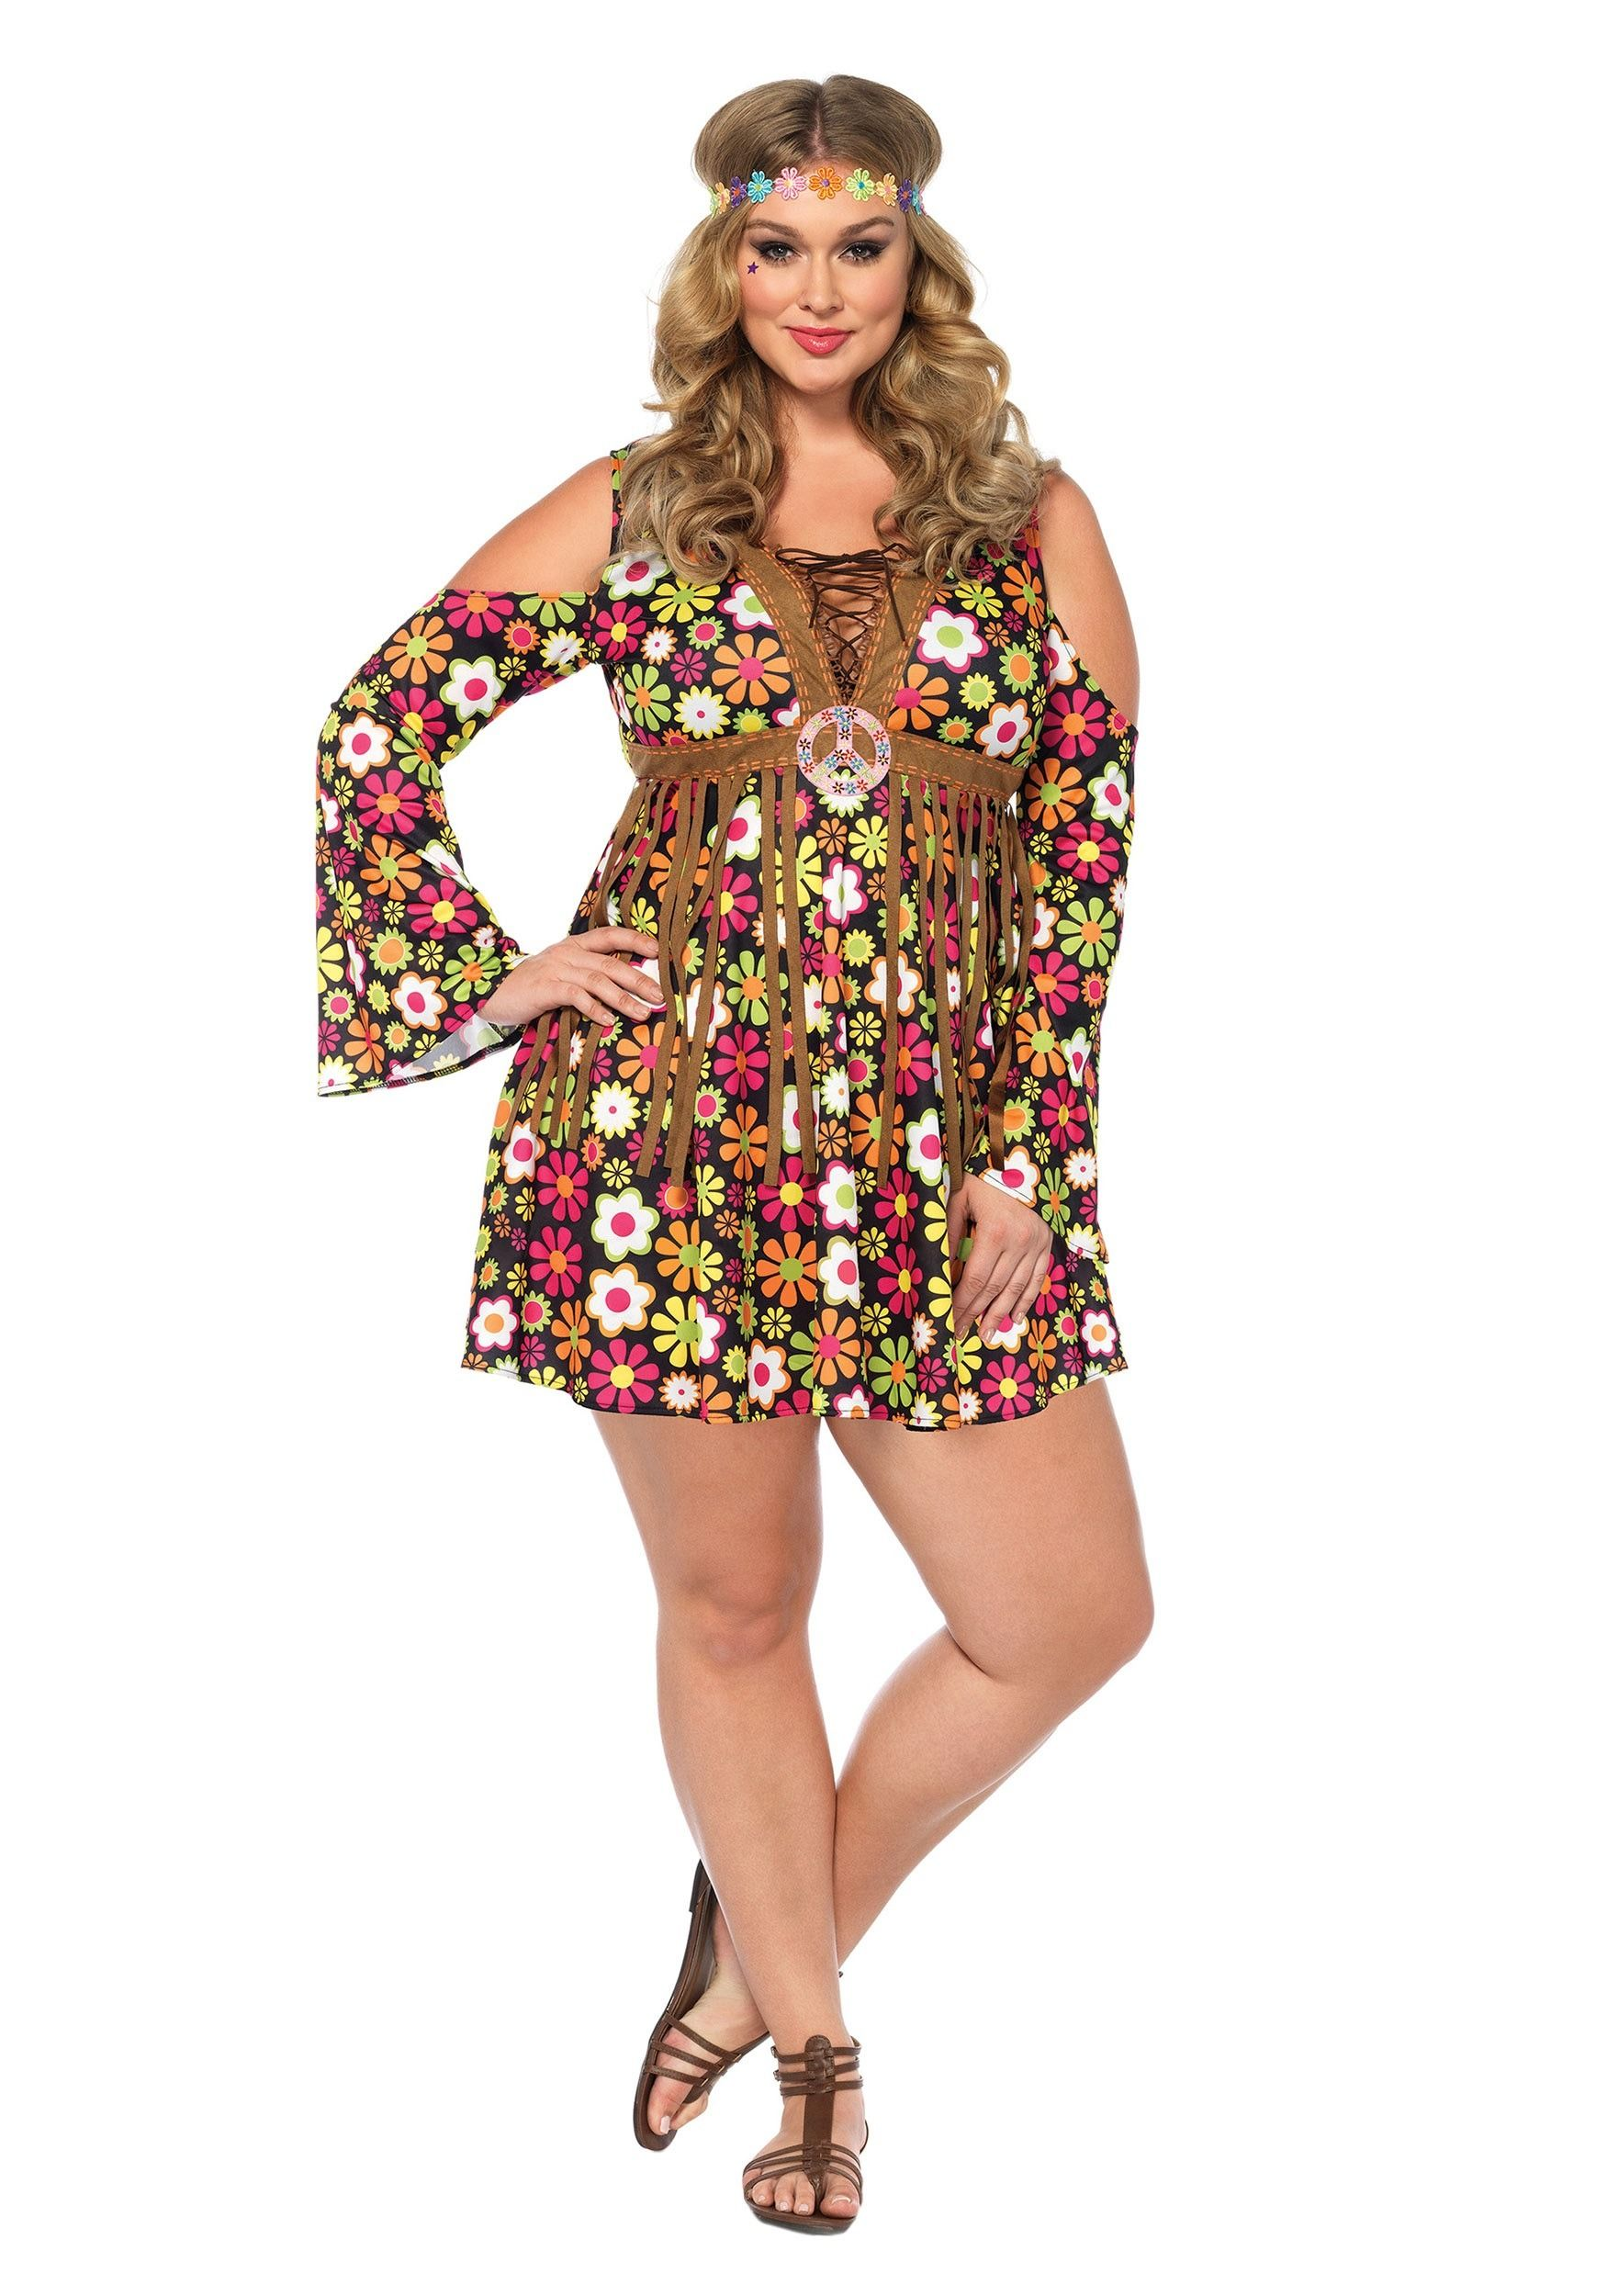 Fashion week Clothes Hippie for women plus size pictures for lady